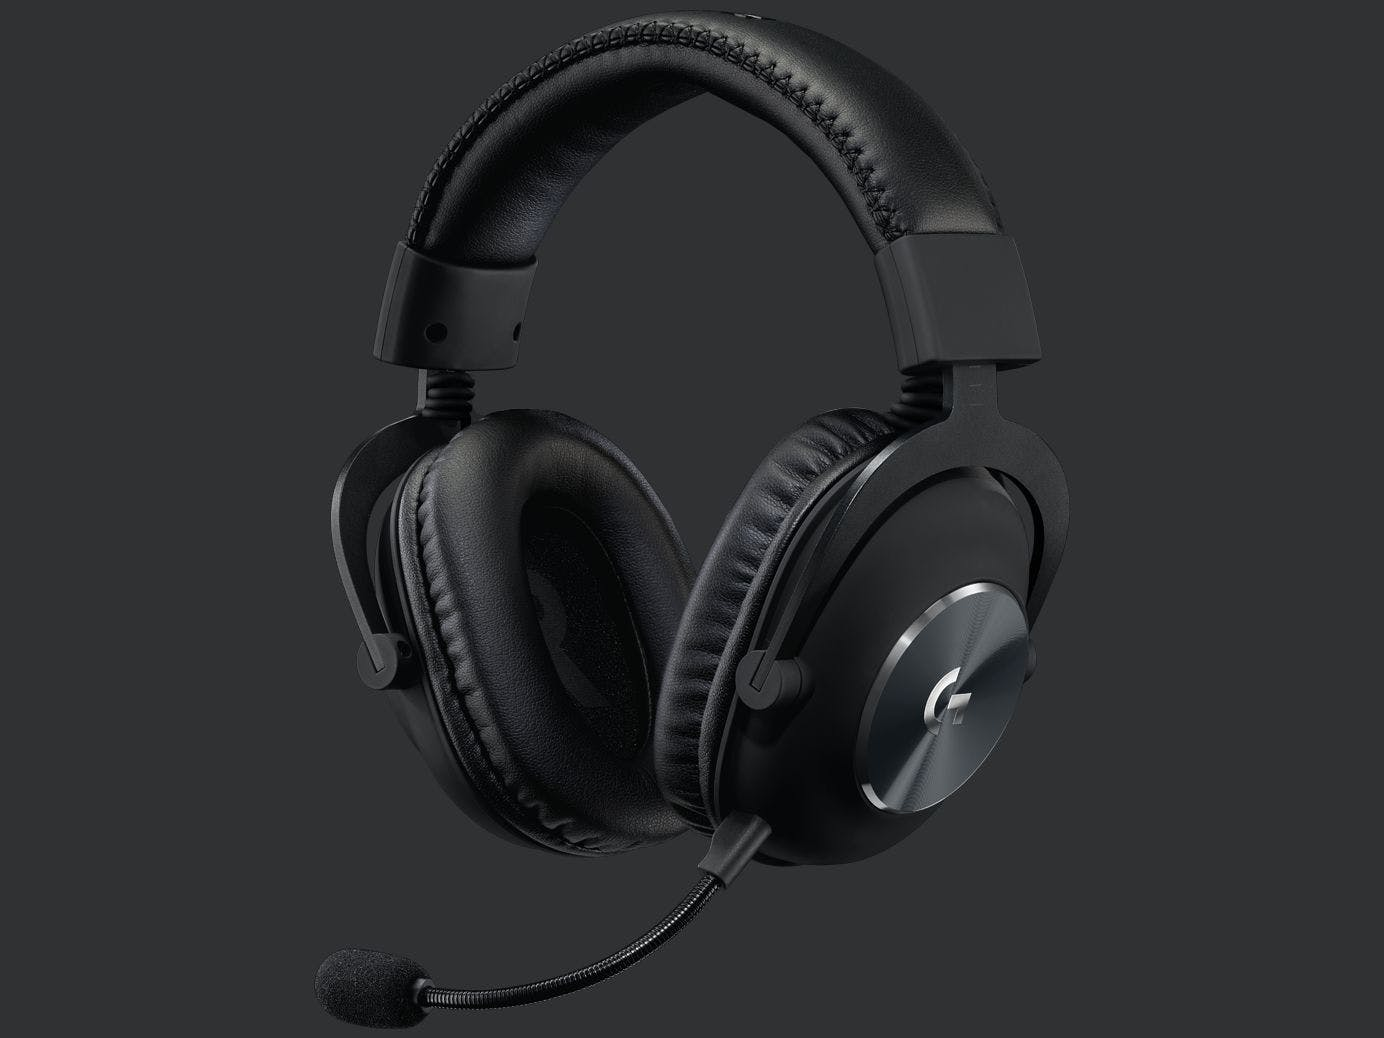 https://images.prismic.io/fanatical/b26d35ef6fe049af6c1994f0aa55455d767f40a7_pro-headset-gallery-1.png.imgw.1384.1038.jpeg?auto=compress,format